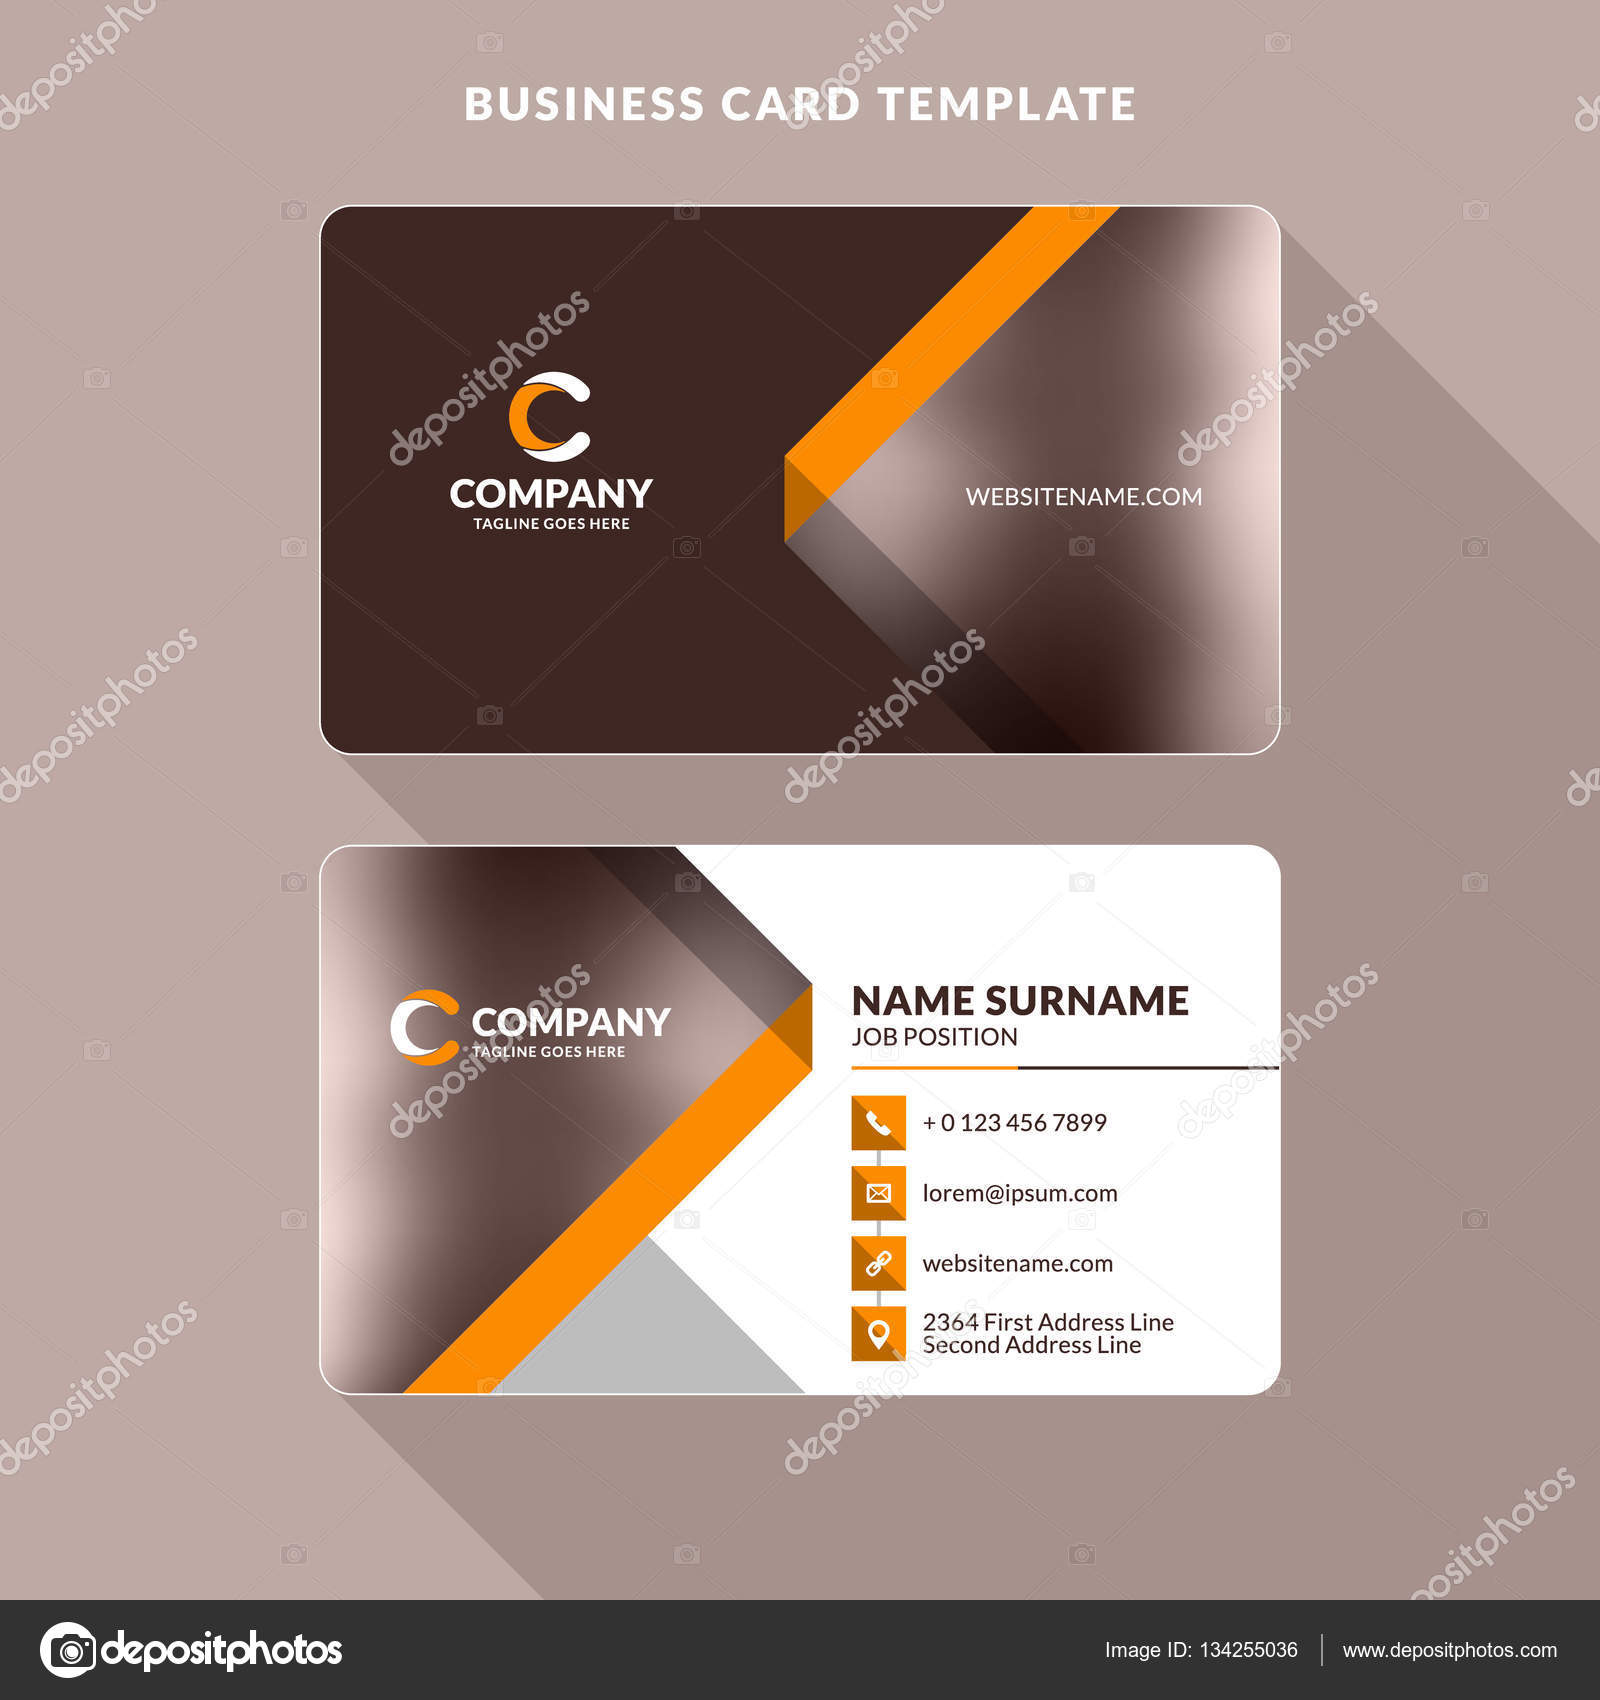 Creative and clean double sided business card template orange and creative and clean double sided business card template orange and brown colors flat cheaphphosting Gallery